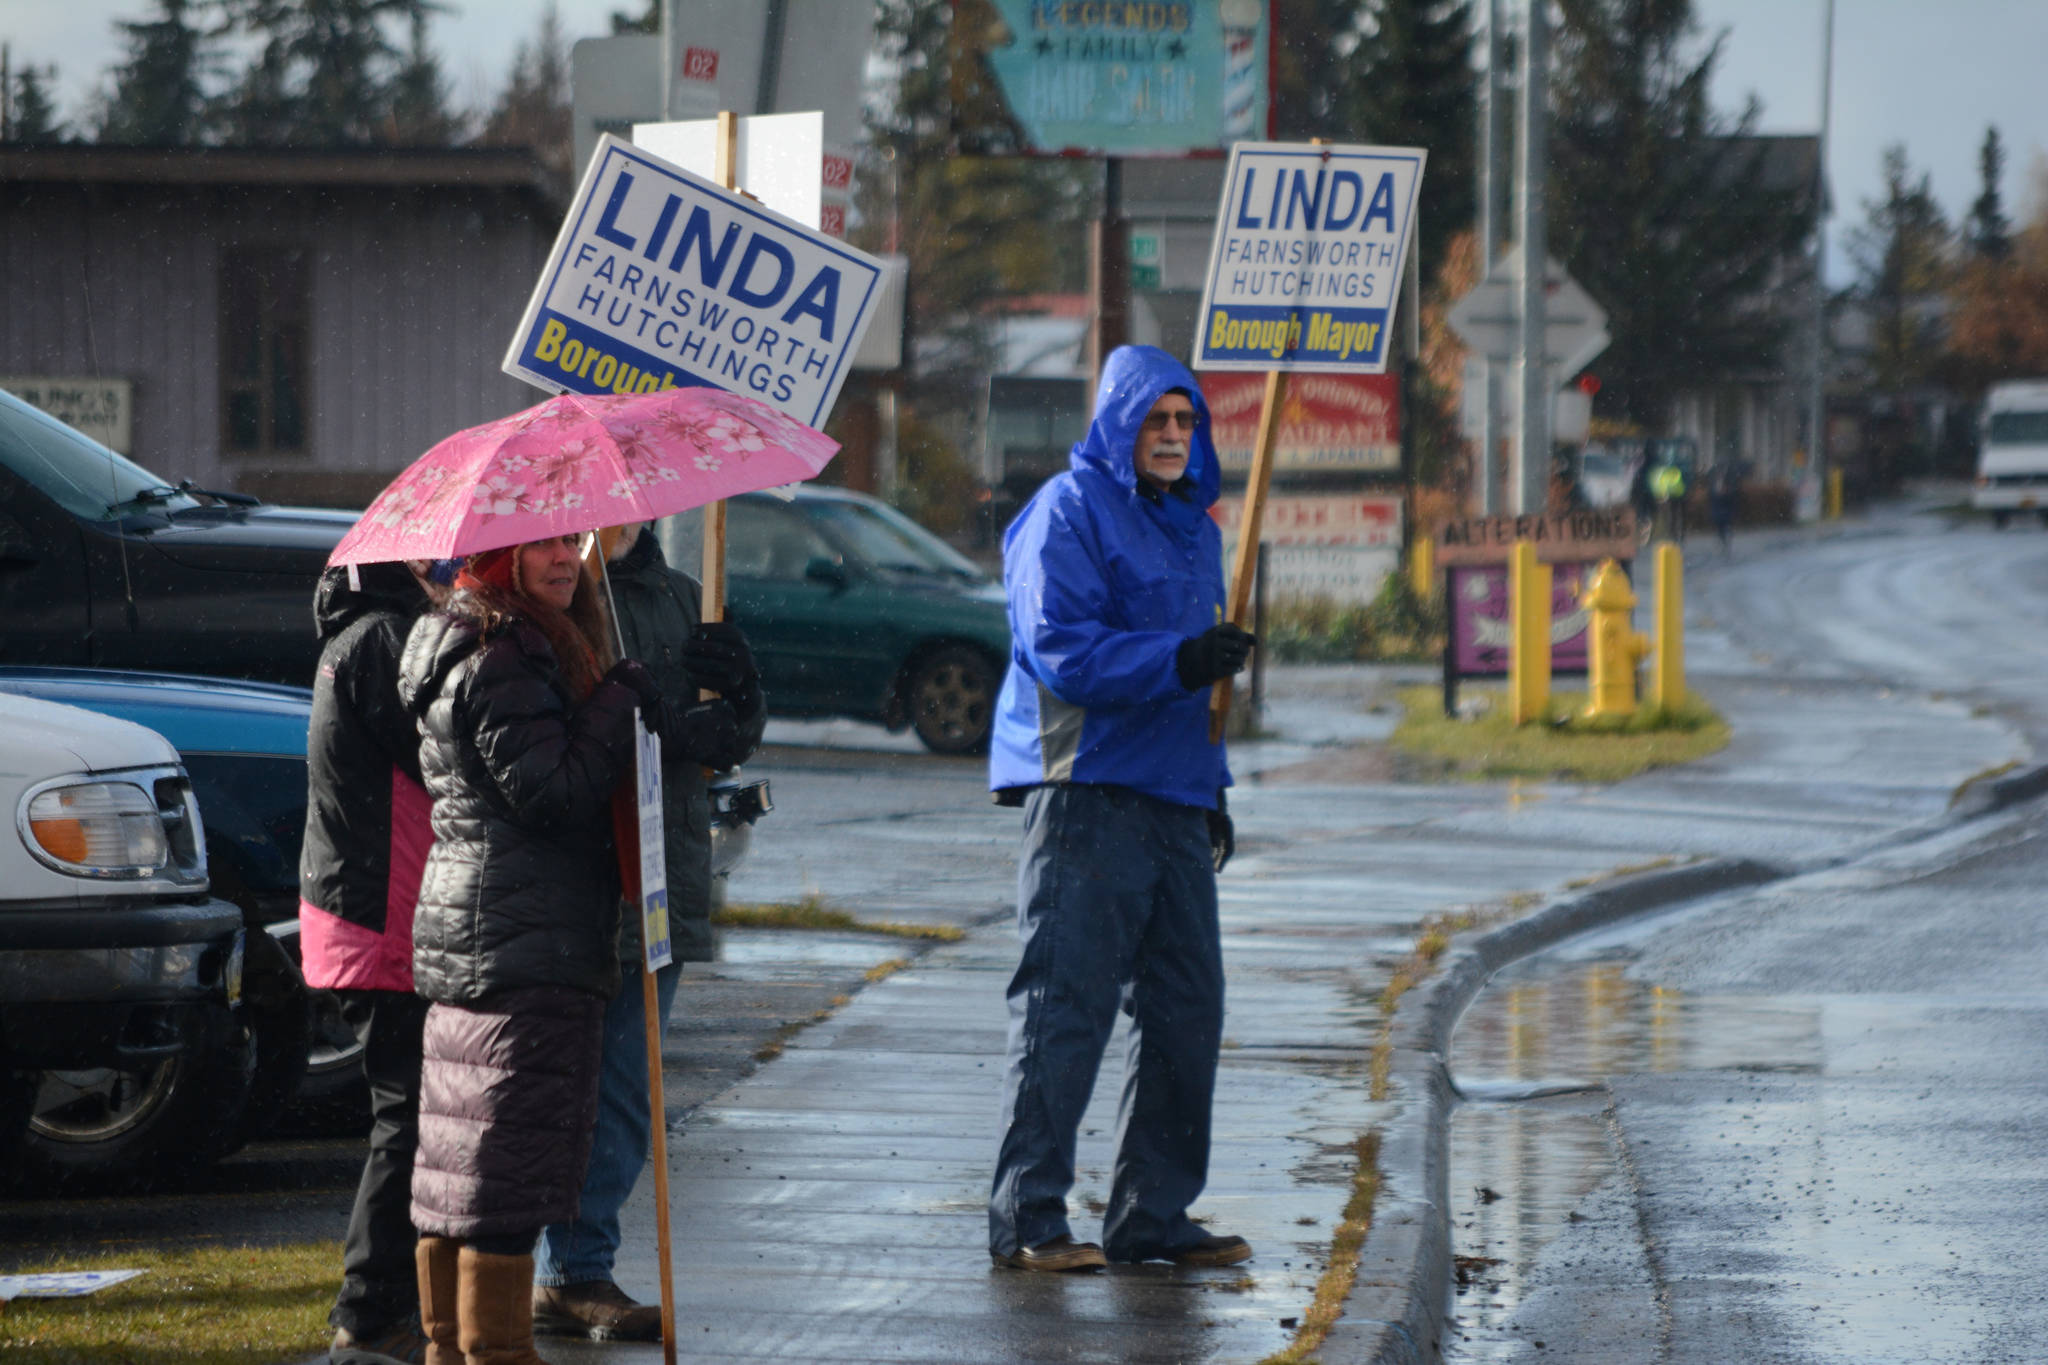 Wayne Aderhold, right, waves signs for Linda Hutchings on Tuesday afternoon, Oct. 24, 2017, in Homer, Alaska, on Pioneer Avenue. To his left are Marjorie Ringer, with umbrella, Lani Raymond and Ron Keffer. (Photo by Michael Armstrong, Homer News)